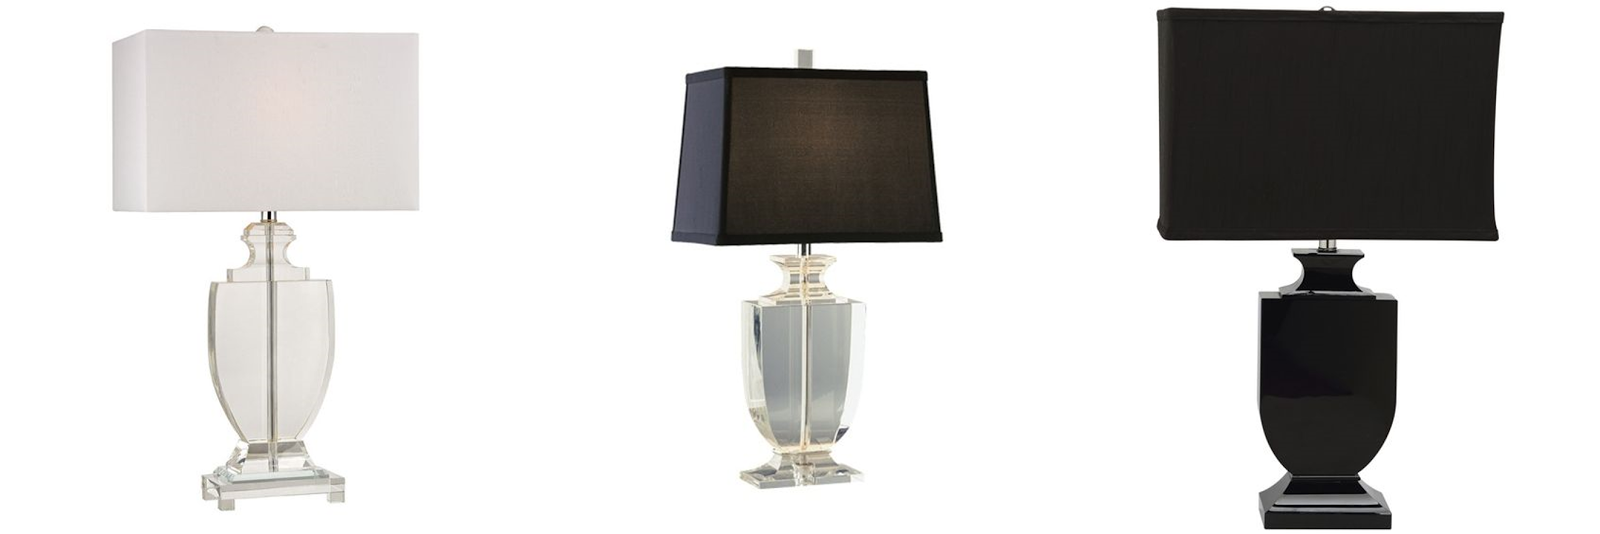 Boho home way to go boho4 taking your home decor back to boho left dimond avonmead solid clear crystal table lamp overstock 243 middle robert abbey artemis table lamp light trends 514 geotapseo Image collections